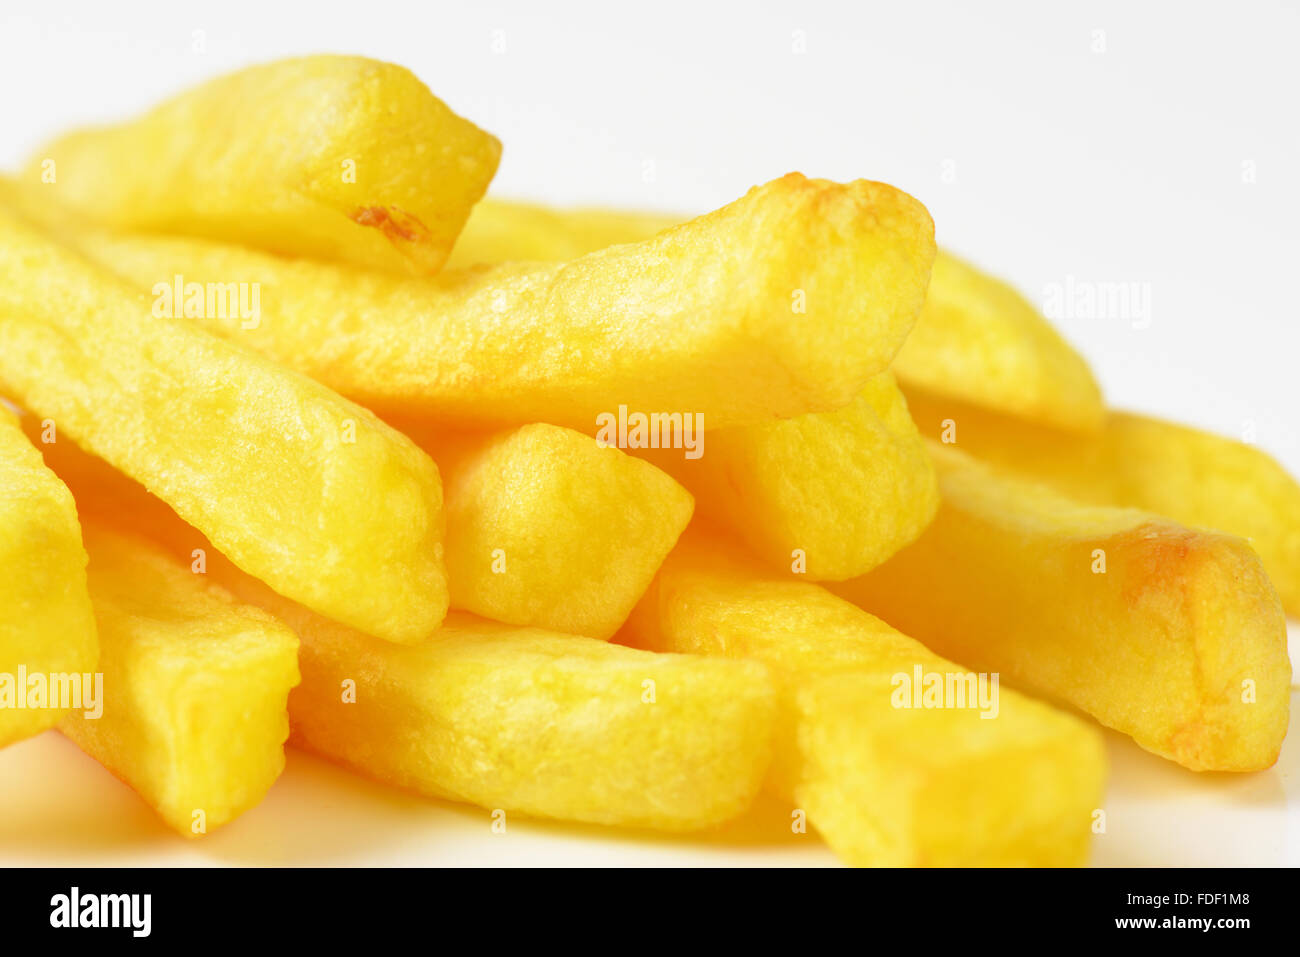 detail of freshly fried french fries - Stock Image